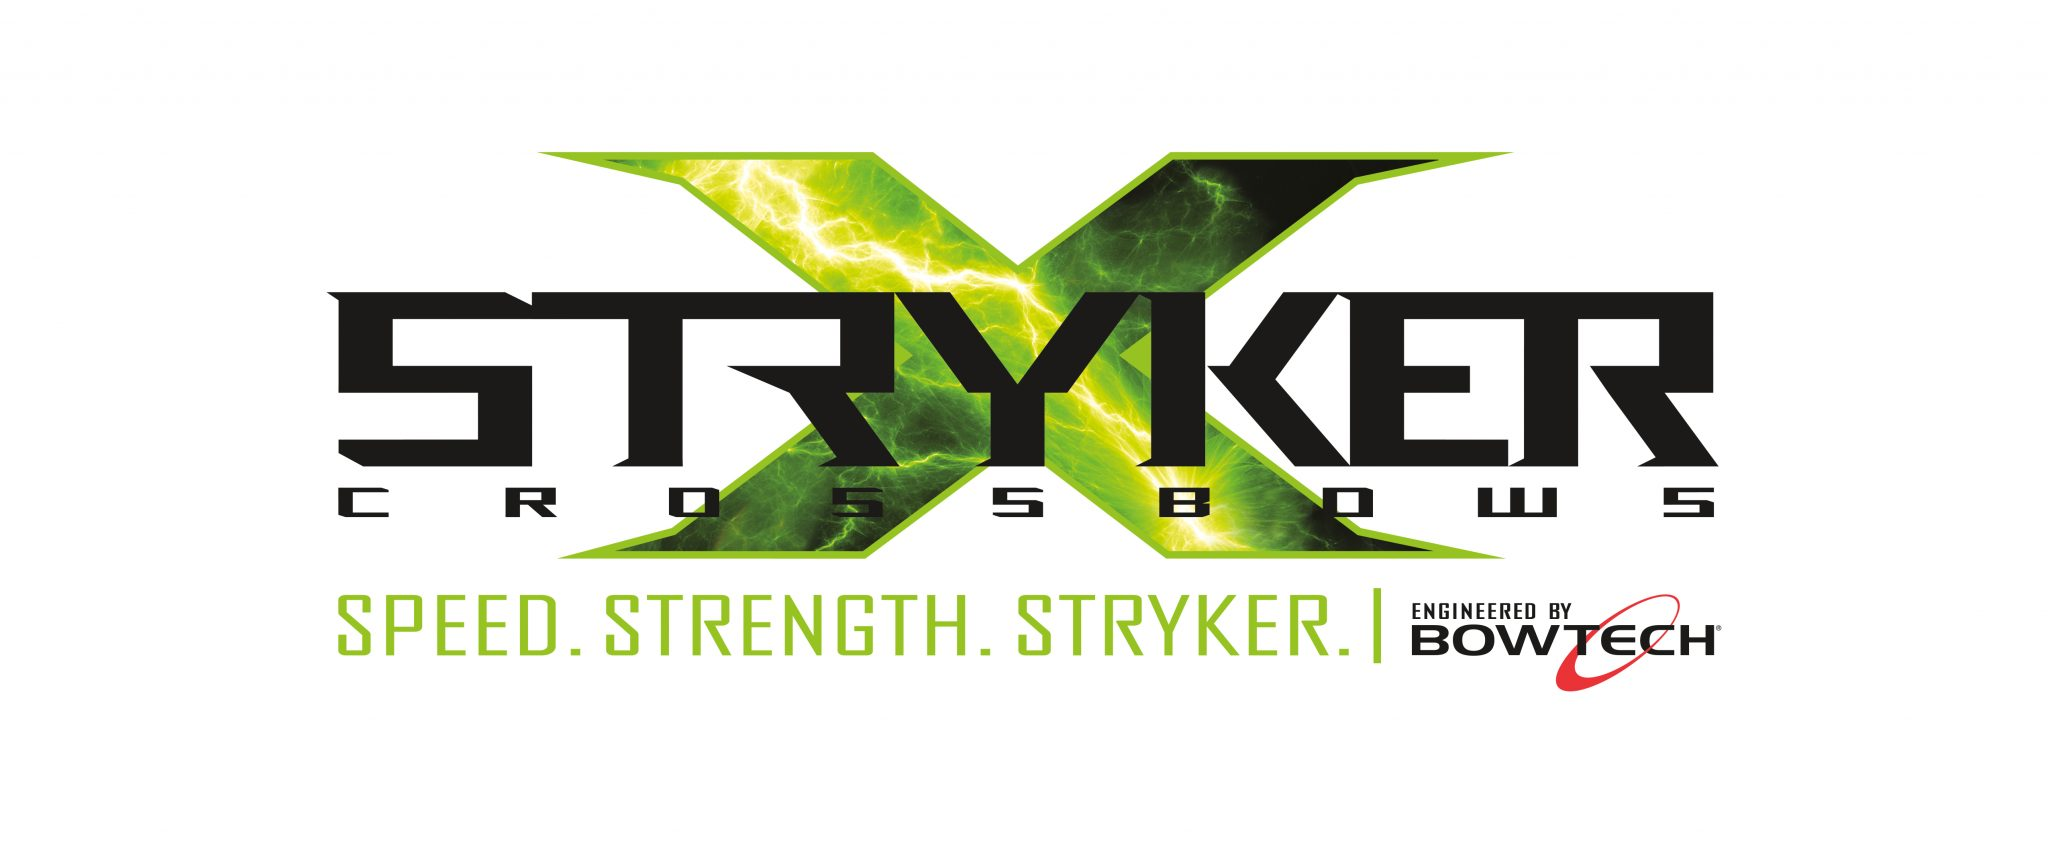 Stryker Logo - New Logo and Tagline from Stryker